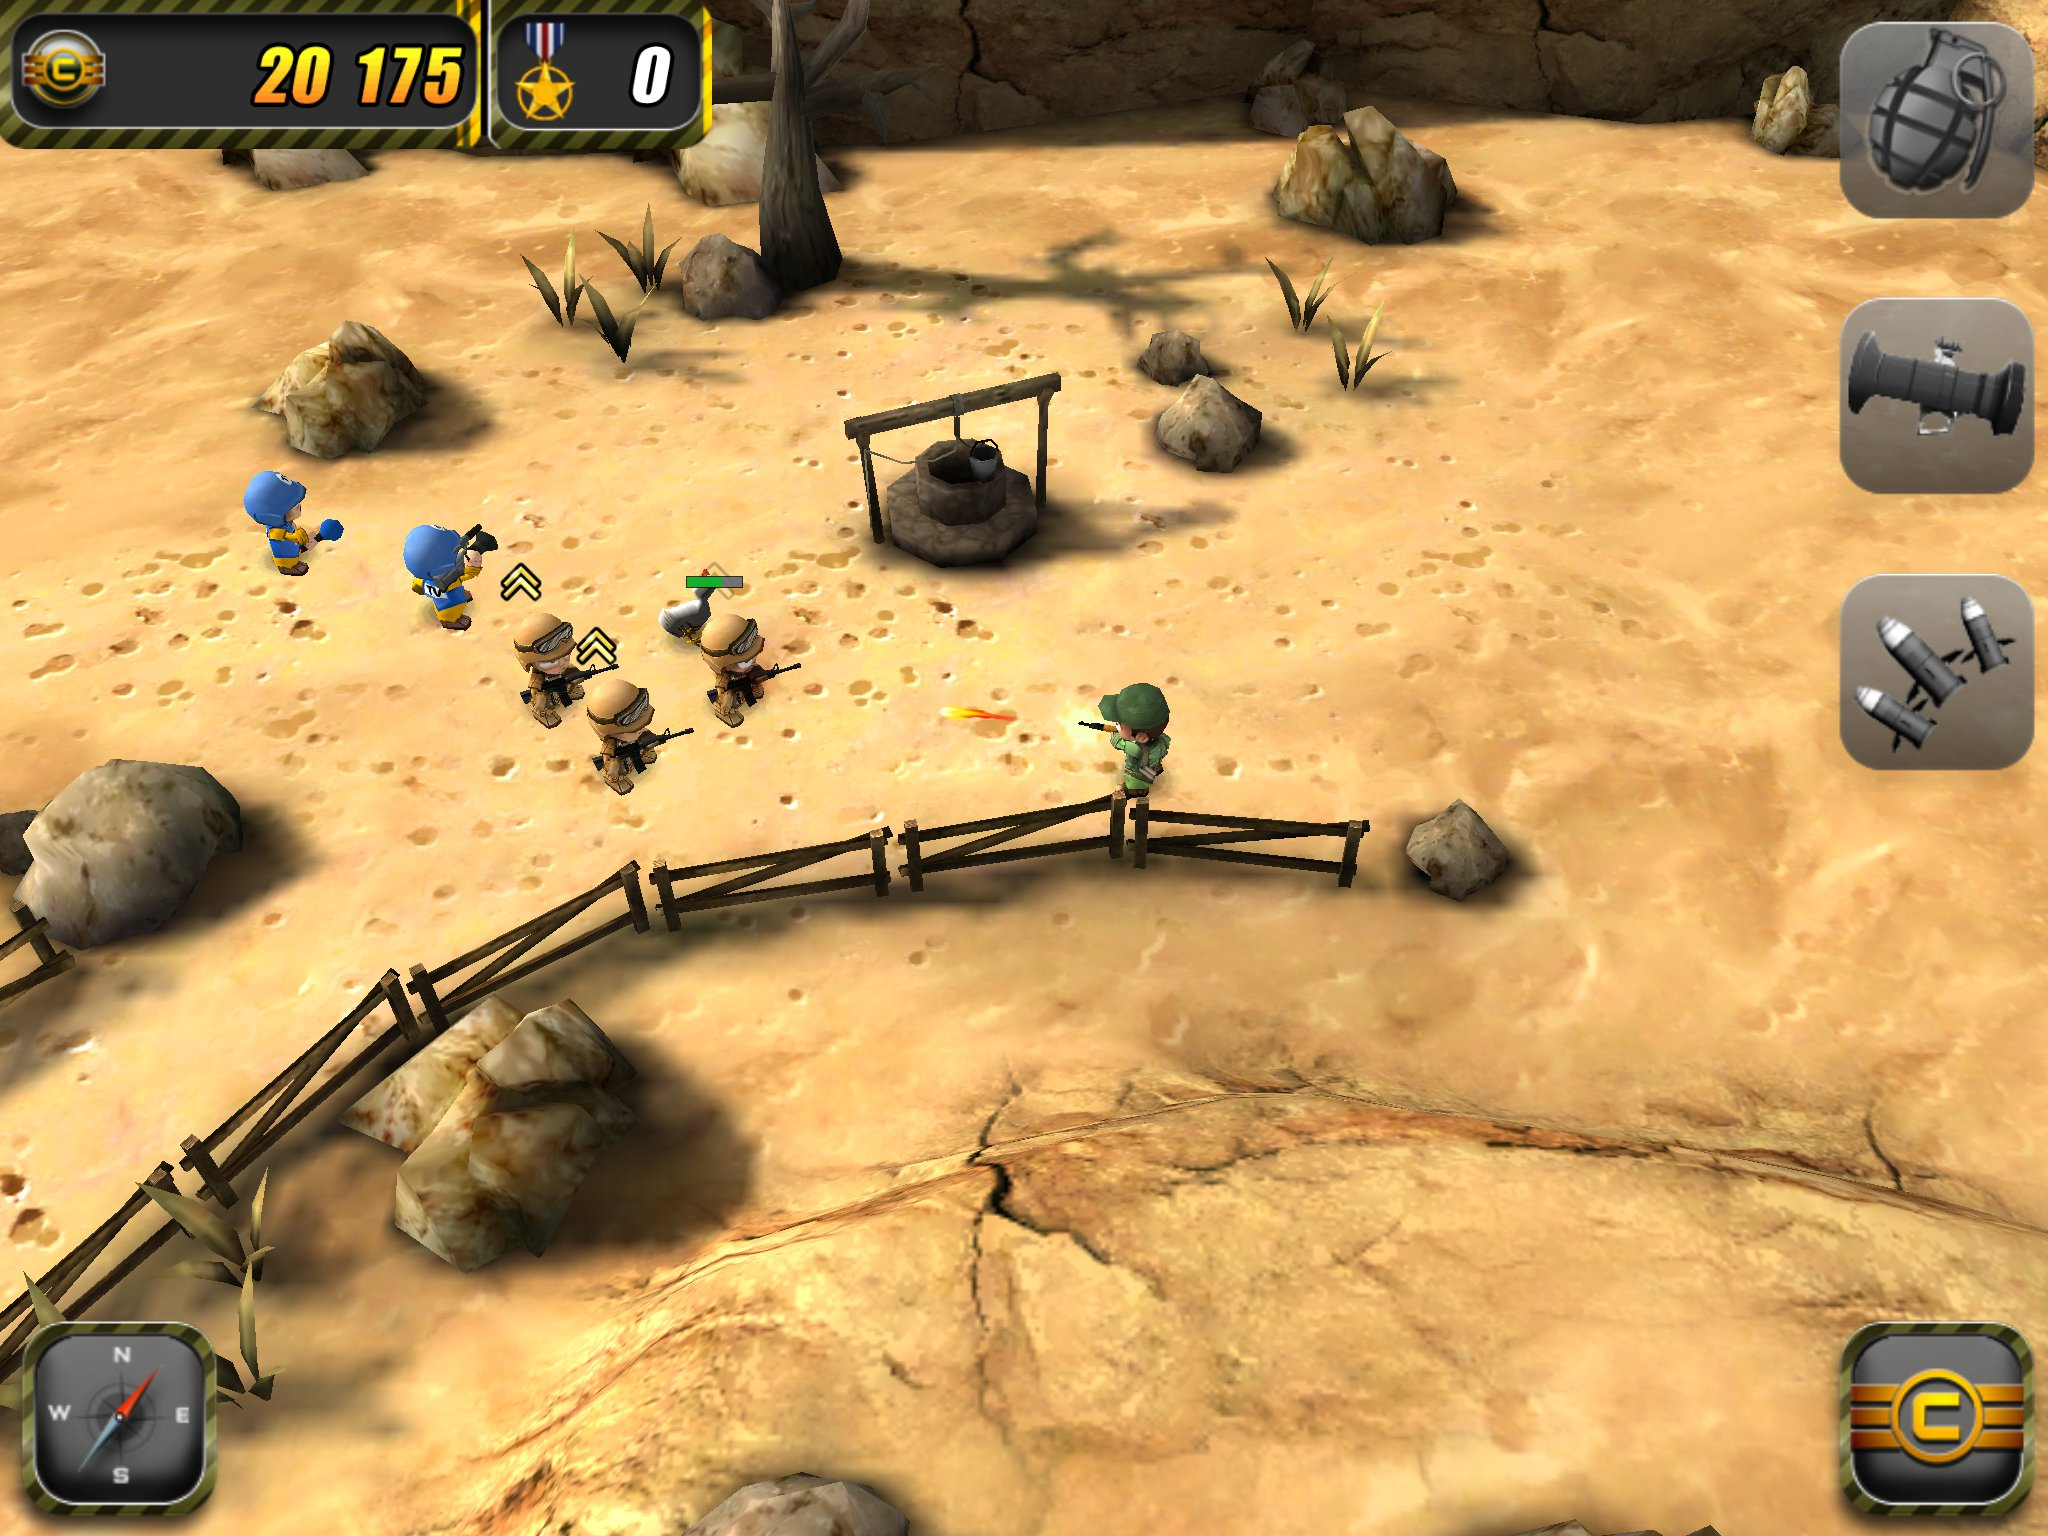 Chillingo slashes price of Tiny Troopers on App Store down to 69p/99c